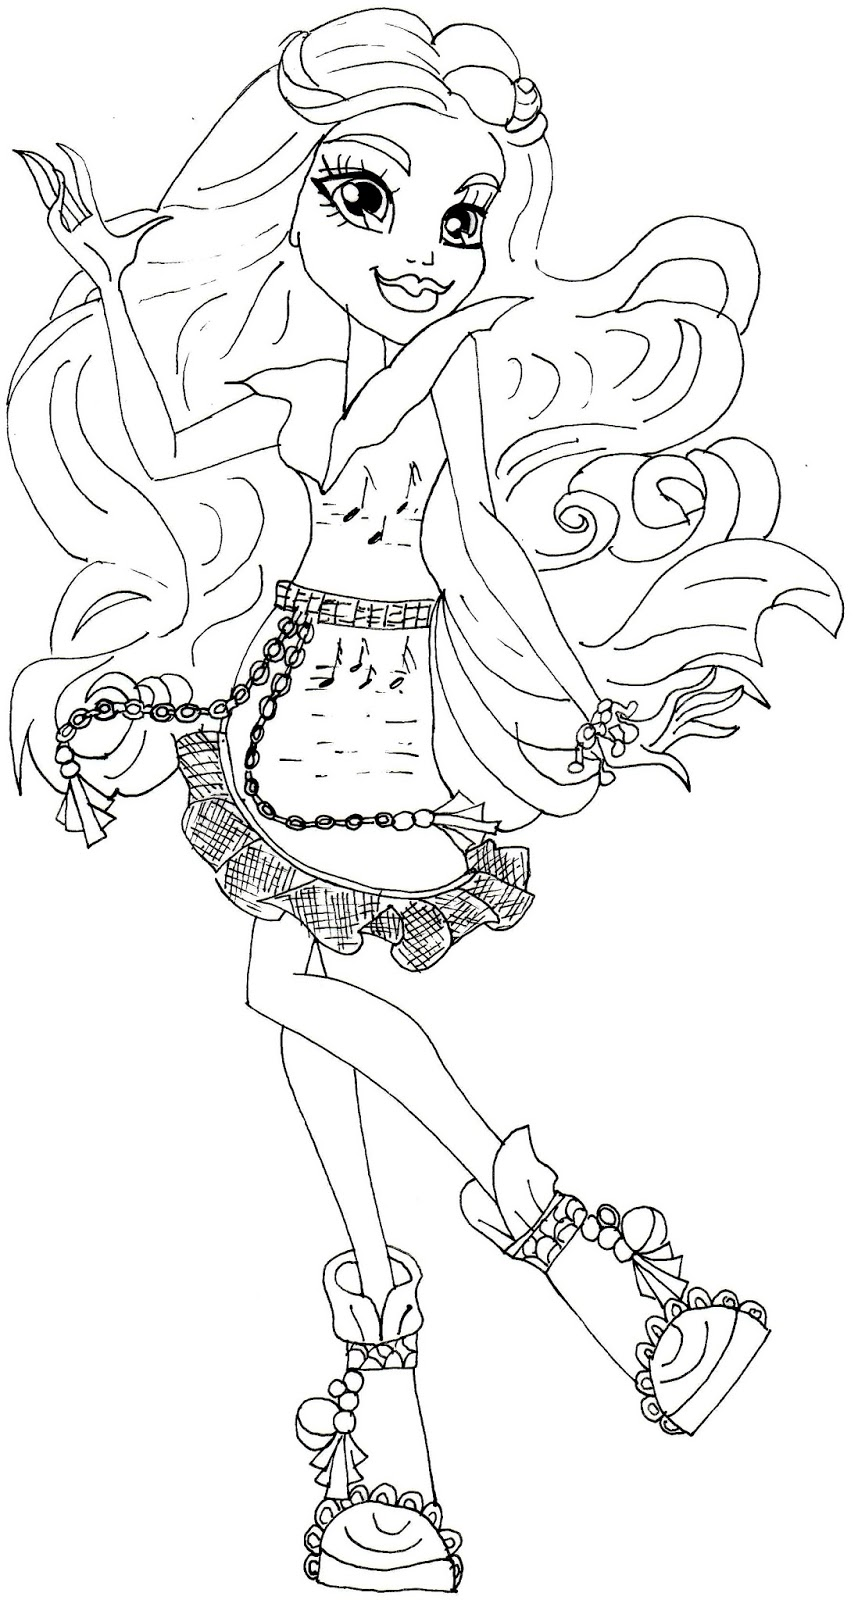 ari hauntington monster high coloring page - Monster High Coloring Pages